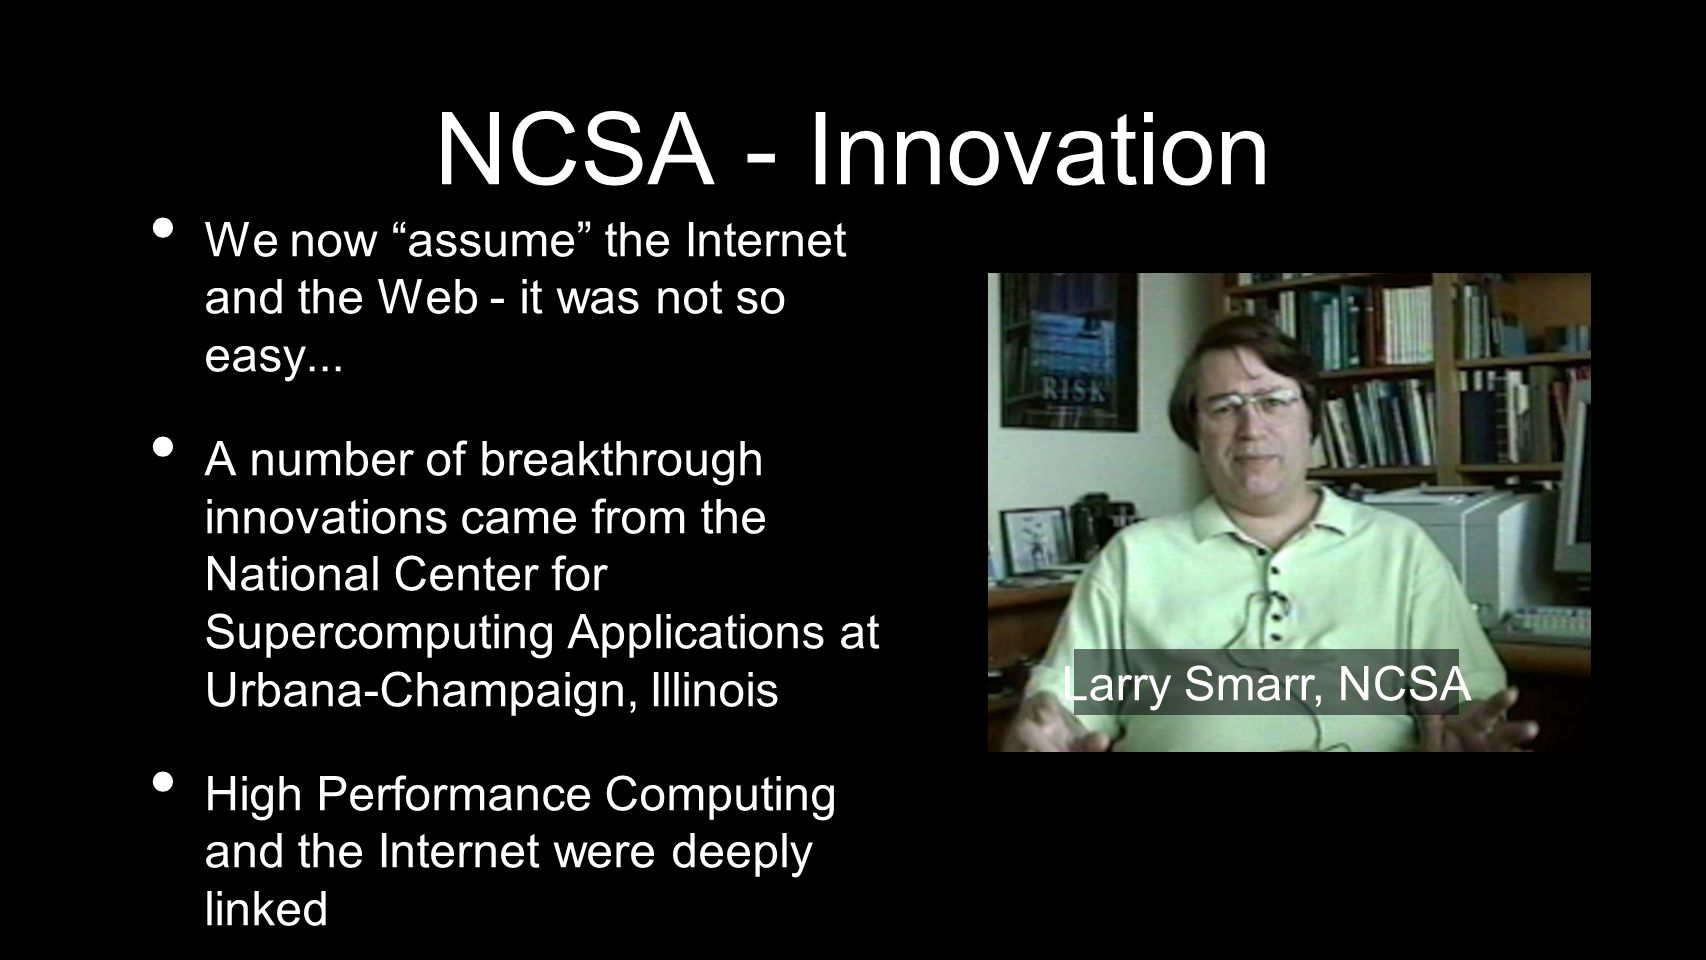 NCSA - Innovation We now assume the Internet and the Web - it was not so easy...